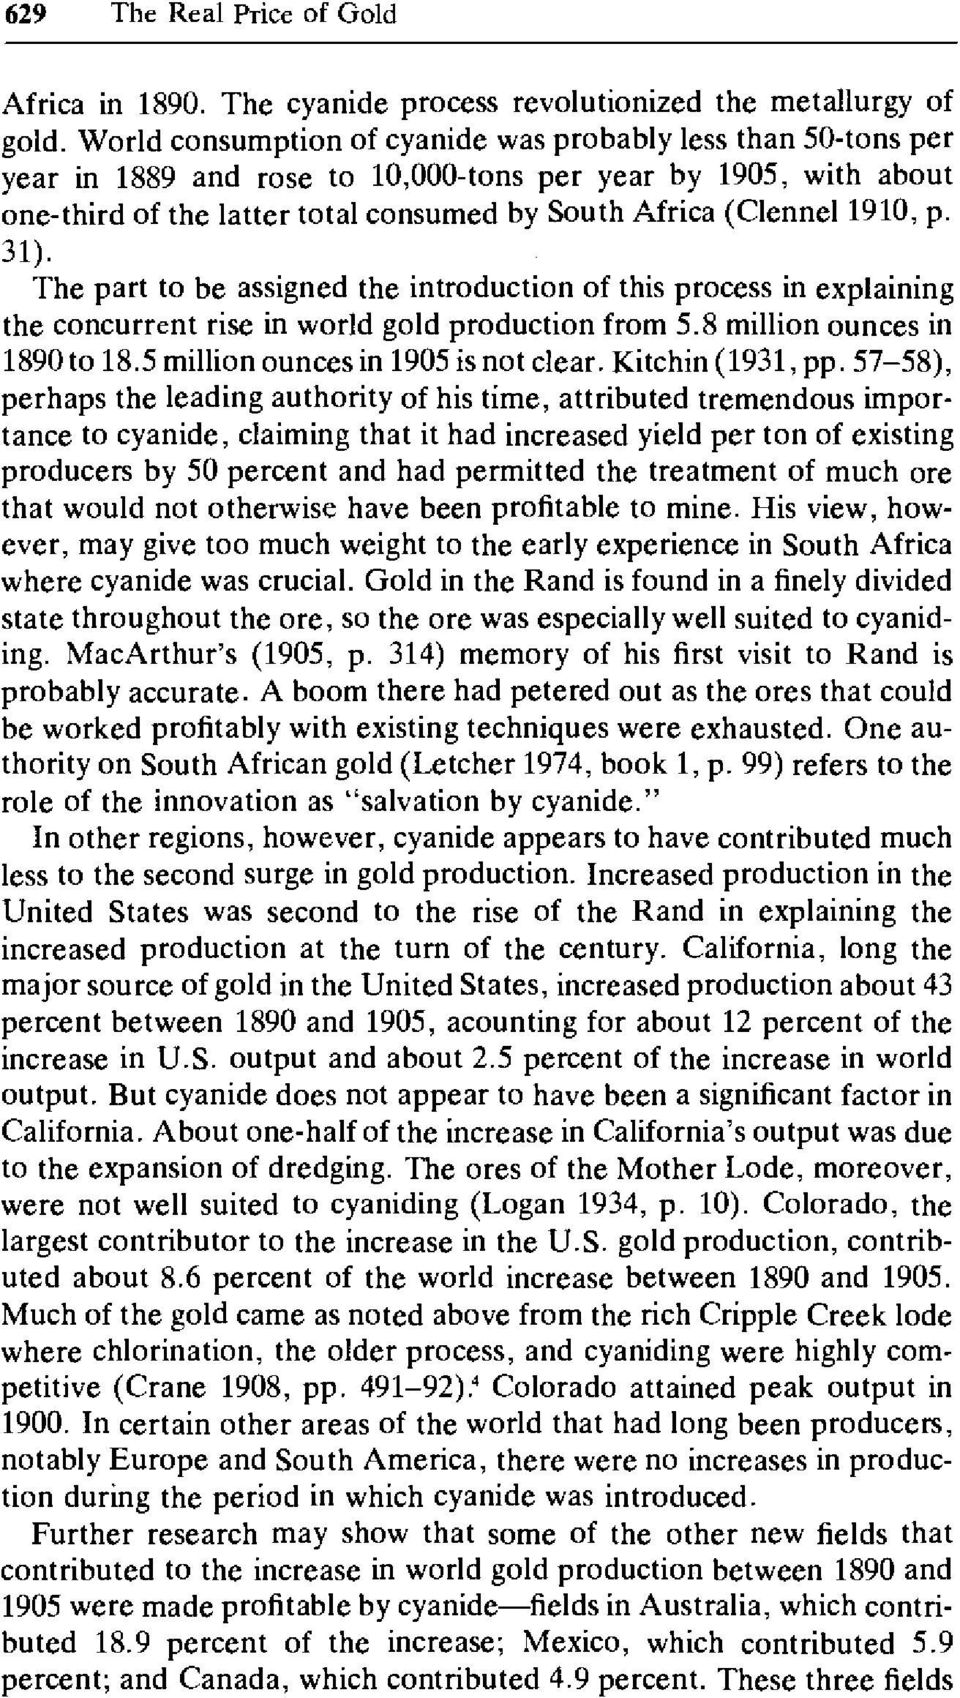 p. 31). The part to be assigned the introduction of this process in explaining the concurrent rise in world gold production from 5.8 million ounces in 1890 to 18.5 million ounces in 1905 is not clear.